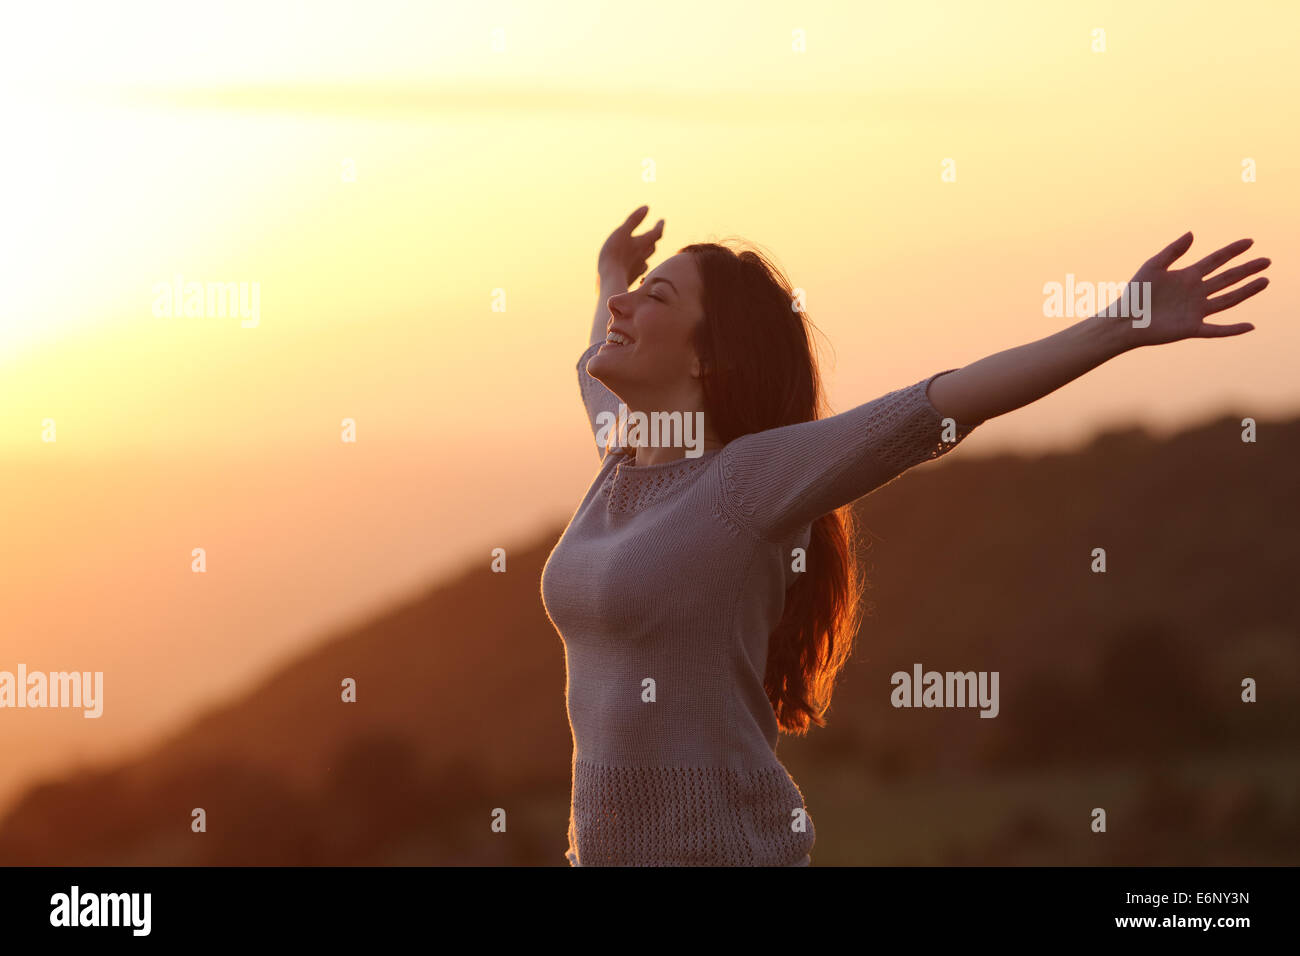 Backlit of  a woman at sunset breathing fresh air raising arms - Stock Image